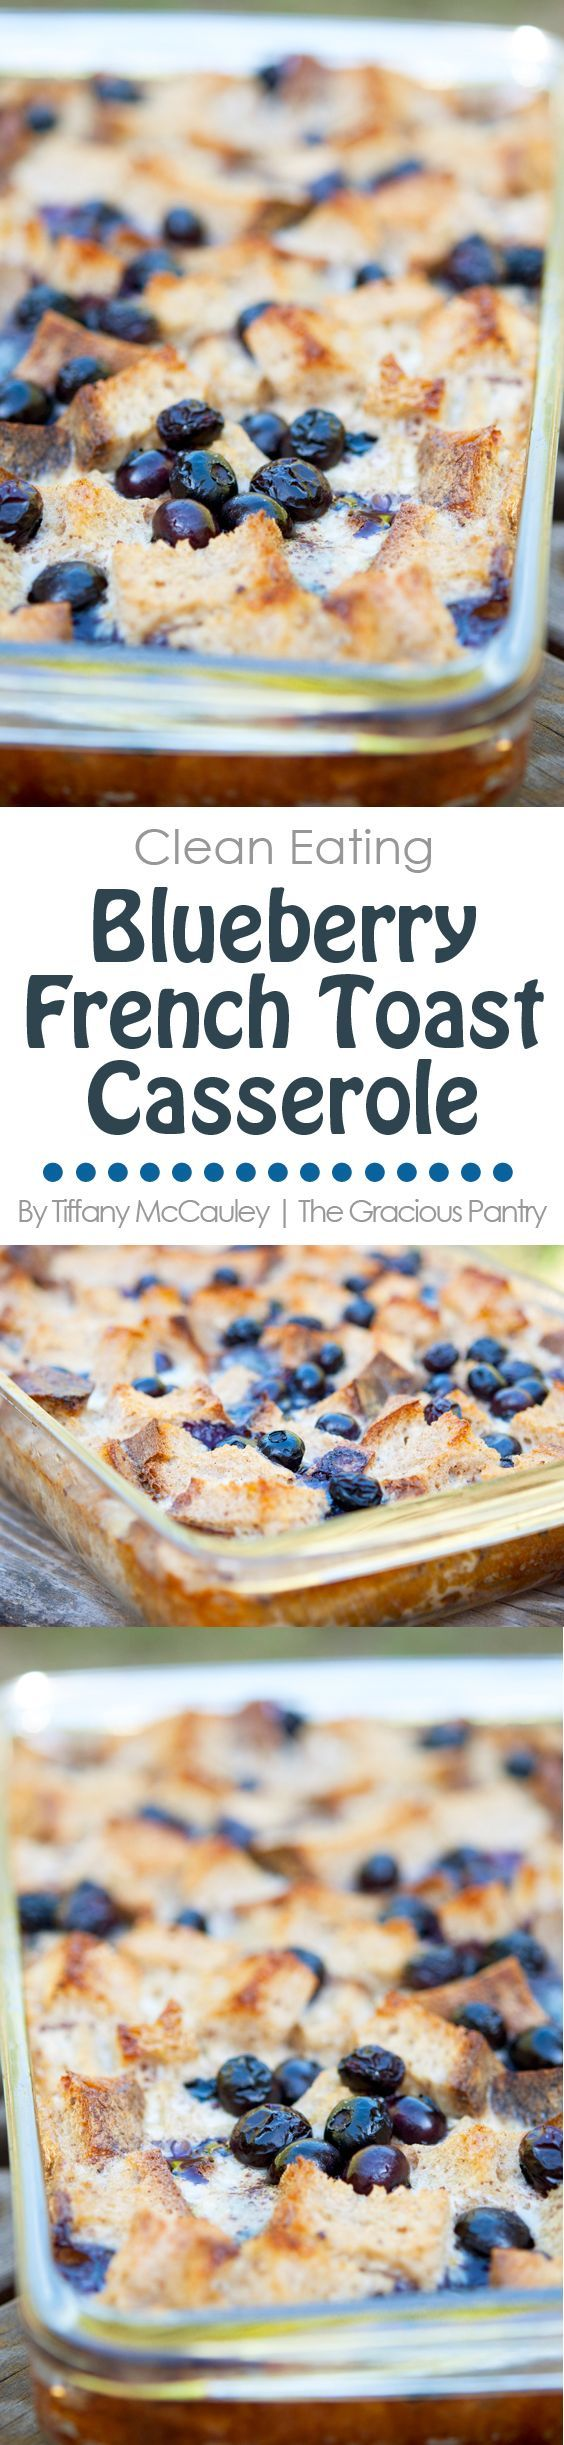 Clean Eating Blueberry French Toast Casserole. An oh-so-yummy option for a special occasion breakfast.